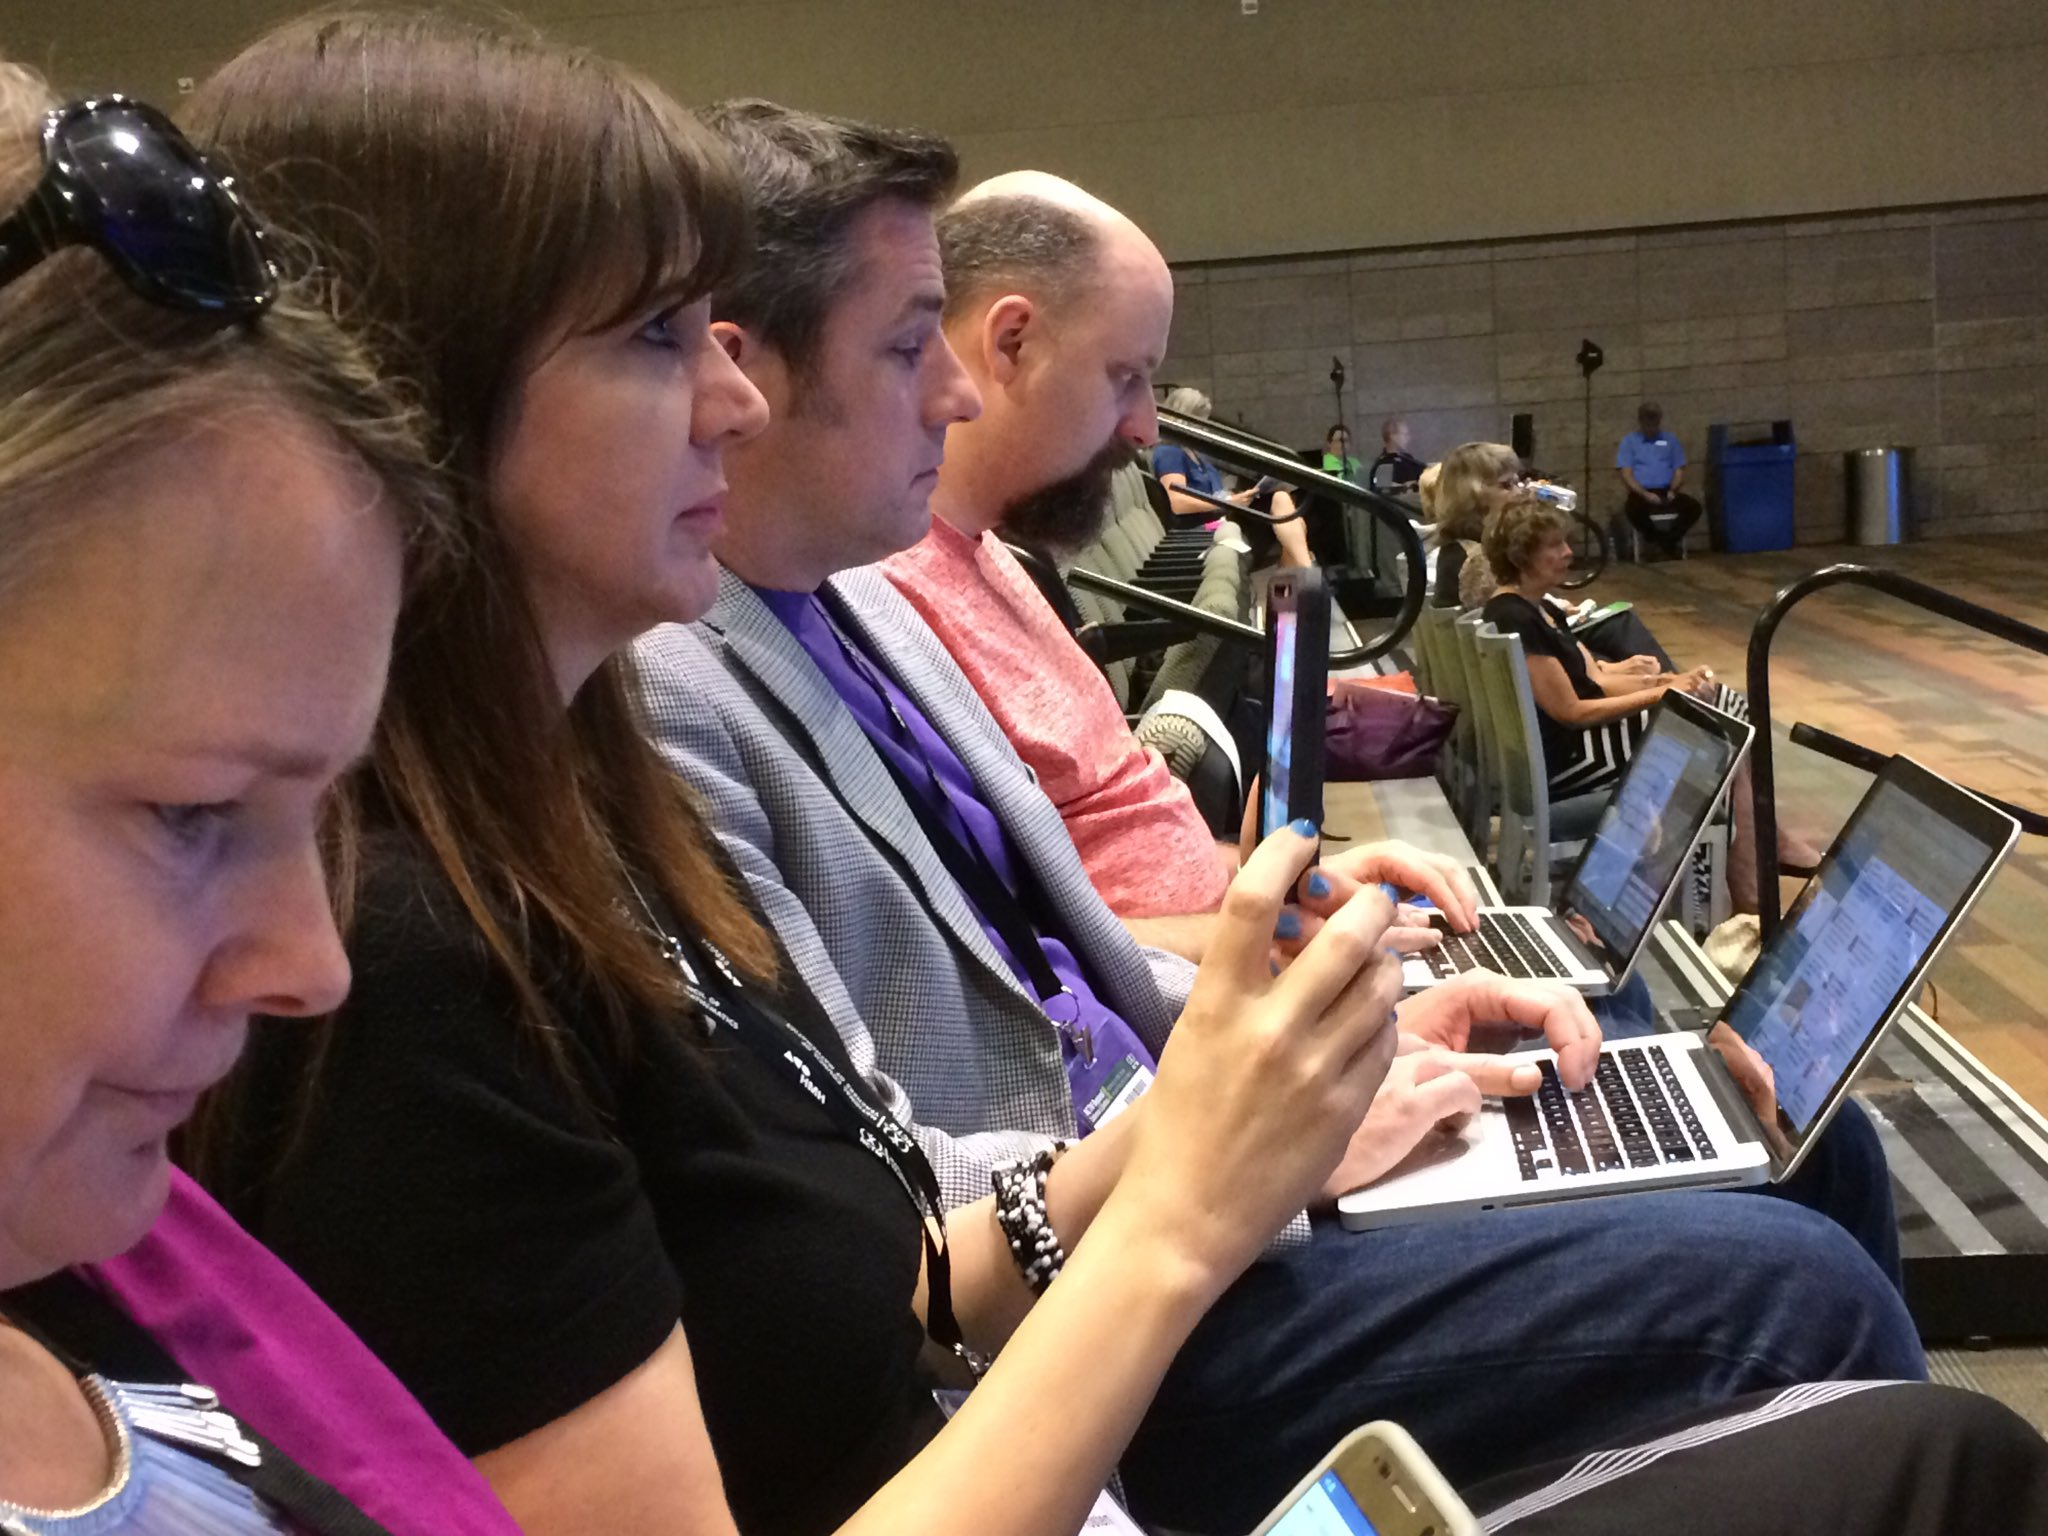 These folks are tweeting up a storm during the #presIgnite at #NCTMregionals https://t.co/UnCkKjOmsh